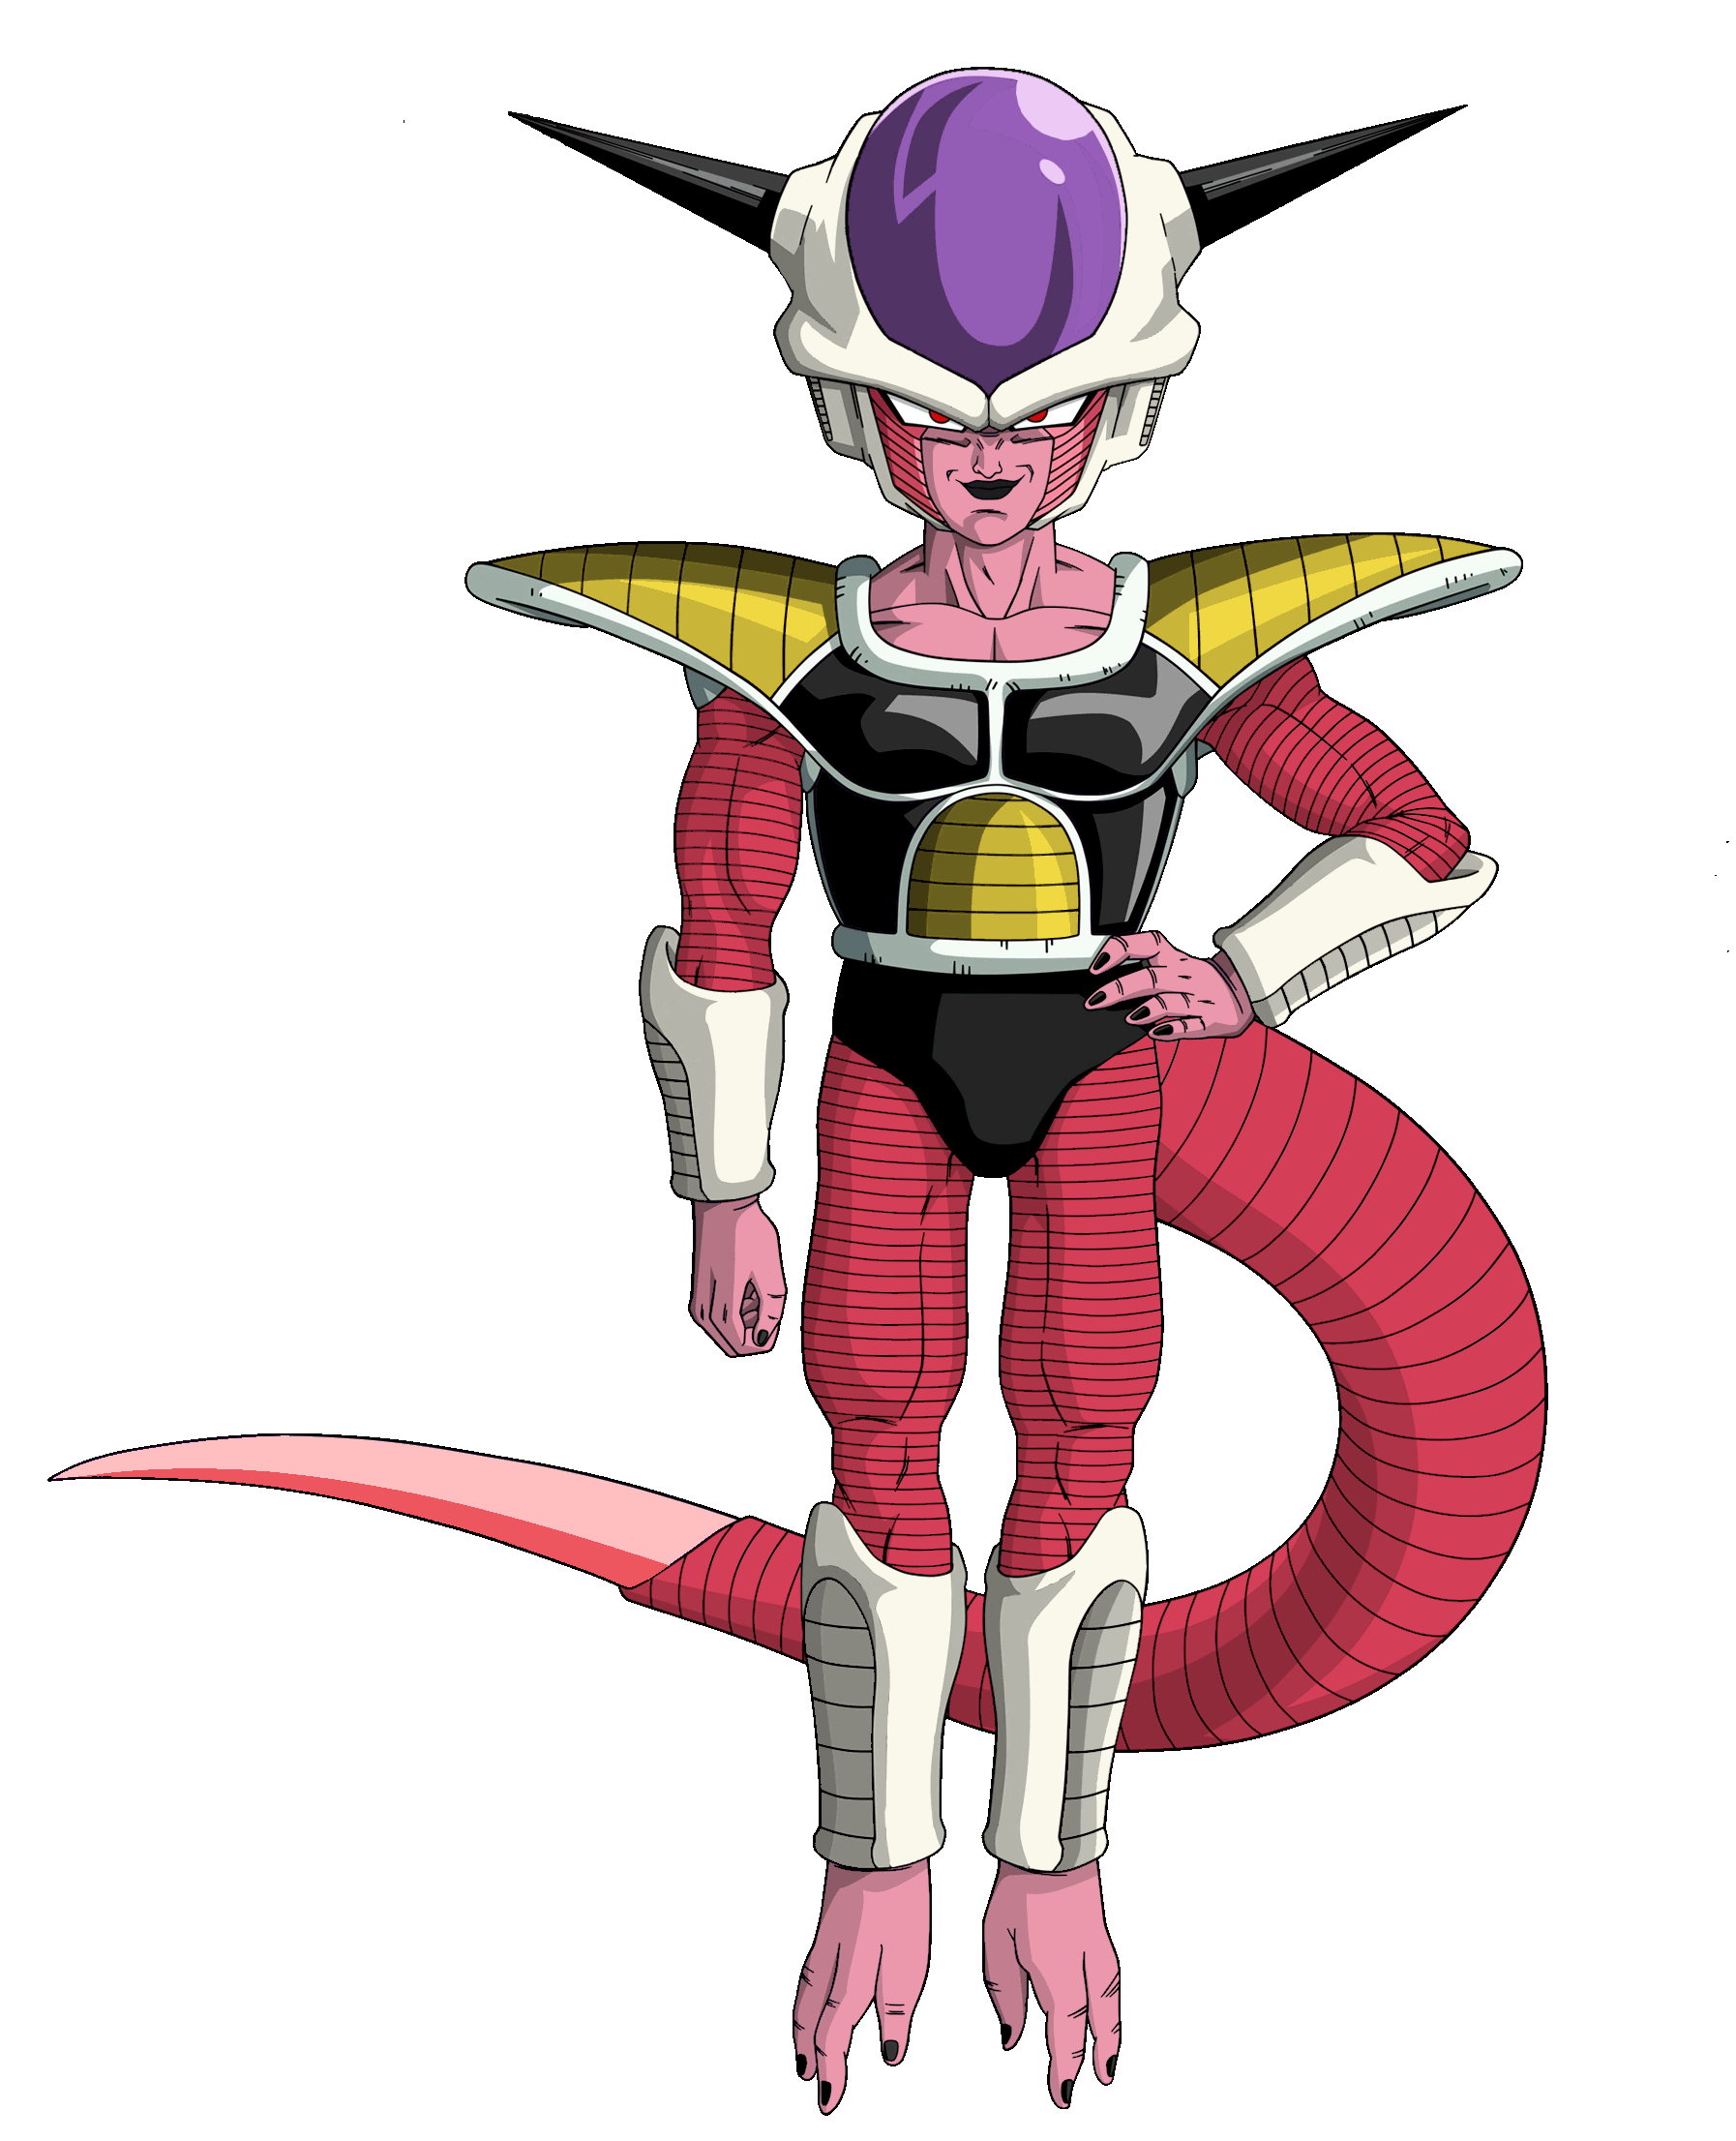 First Form Frieza Dbs Broly Stale Version 2 By Majorleaguegamintrap On Deviantart In 2021 Dragon Ball Super Dragon Ball Wallpapers Dragon Ball